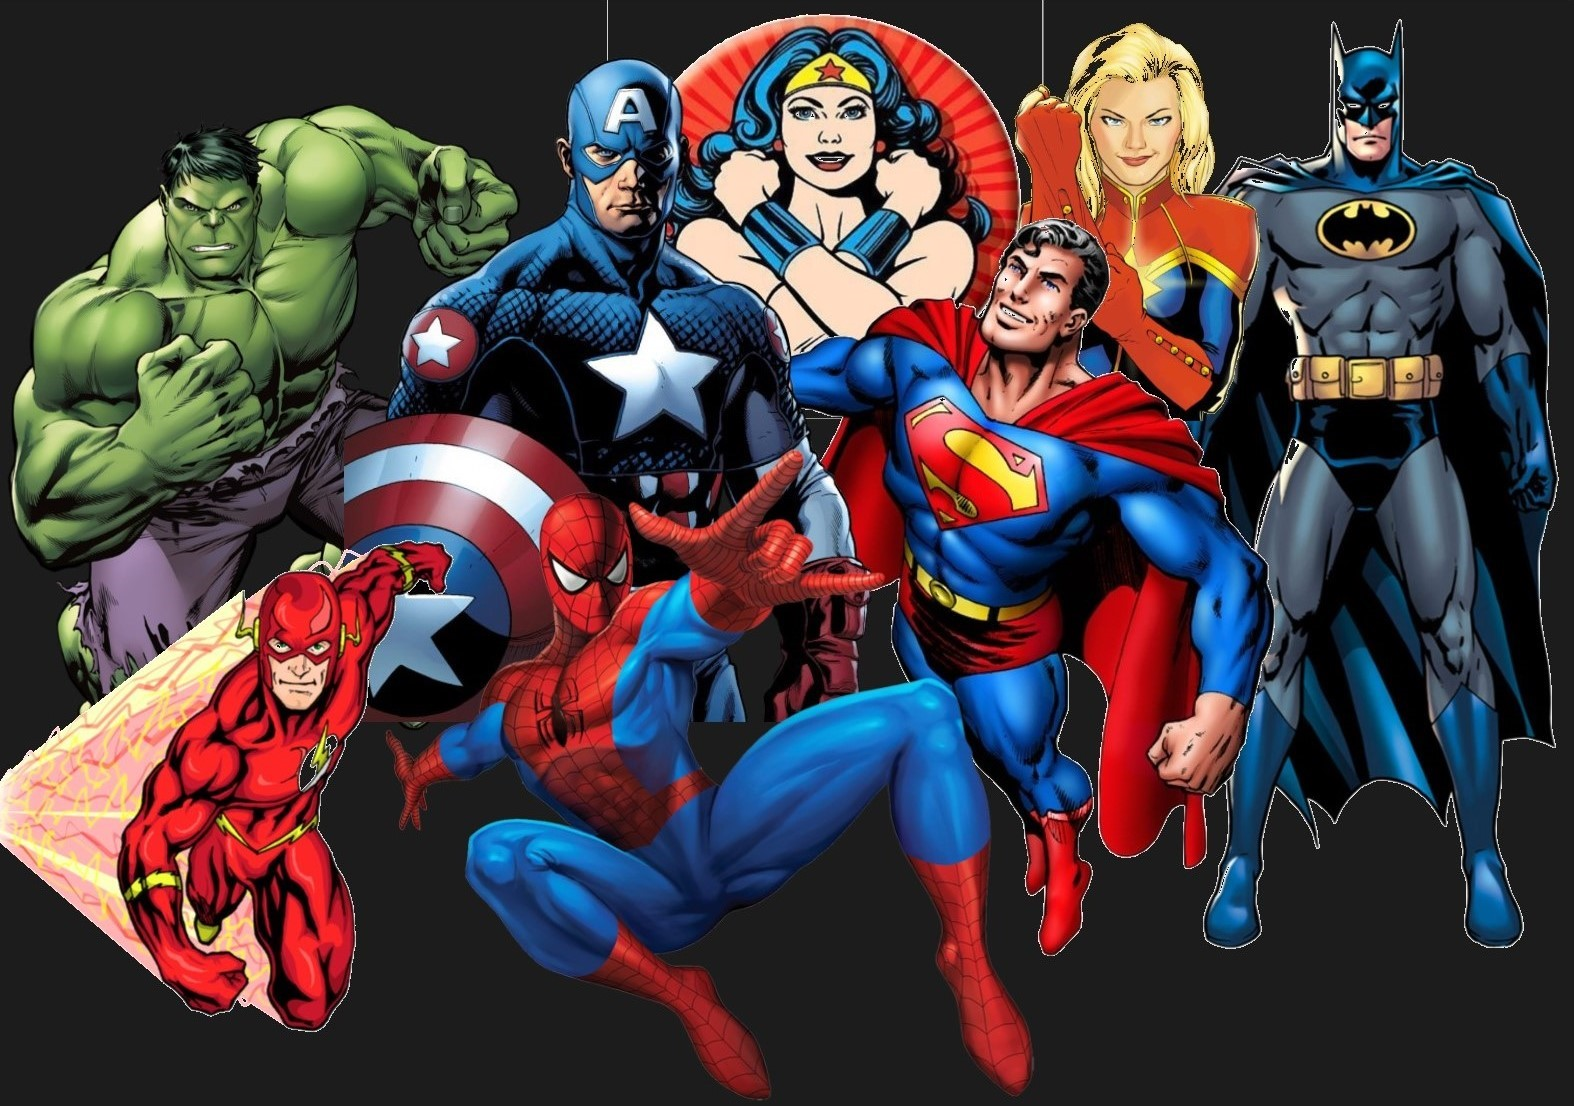 superheroes | Euro Palace Casino Blog